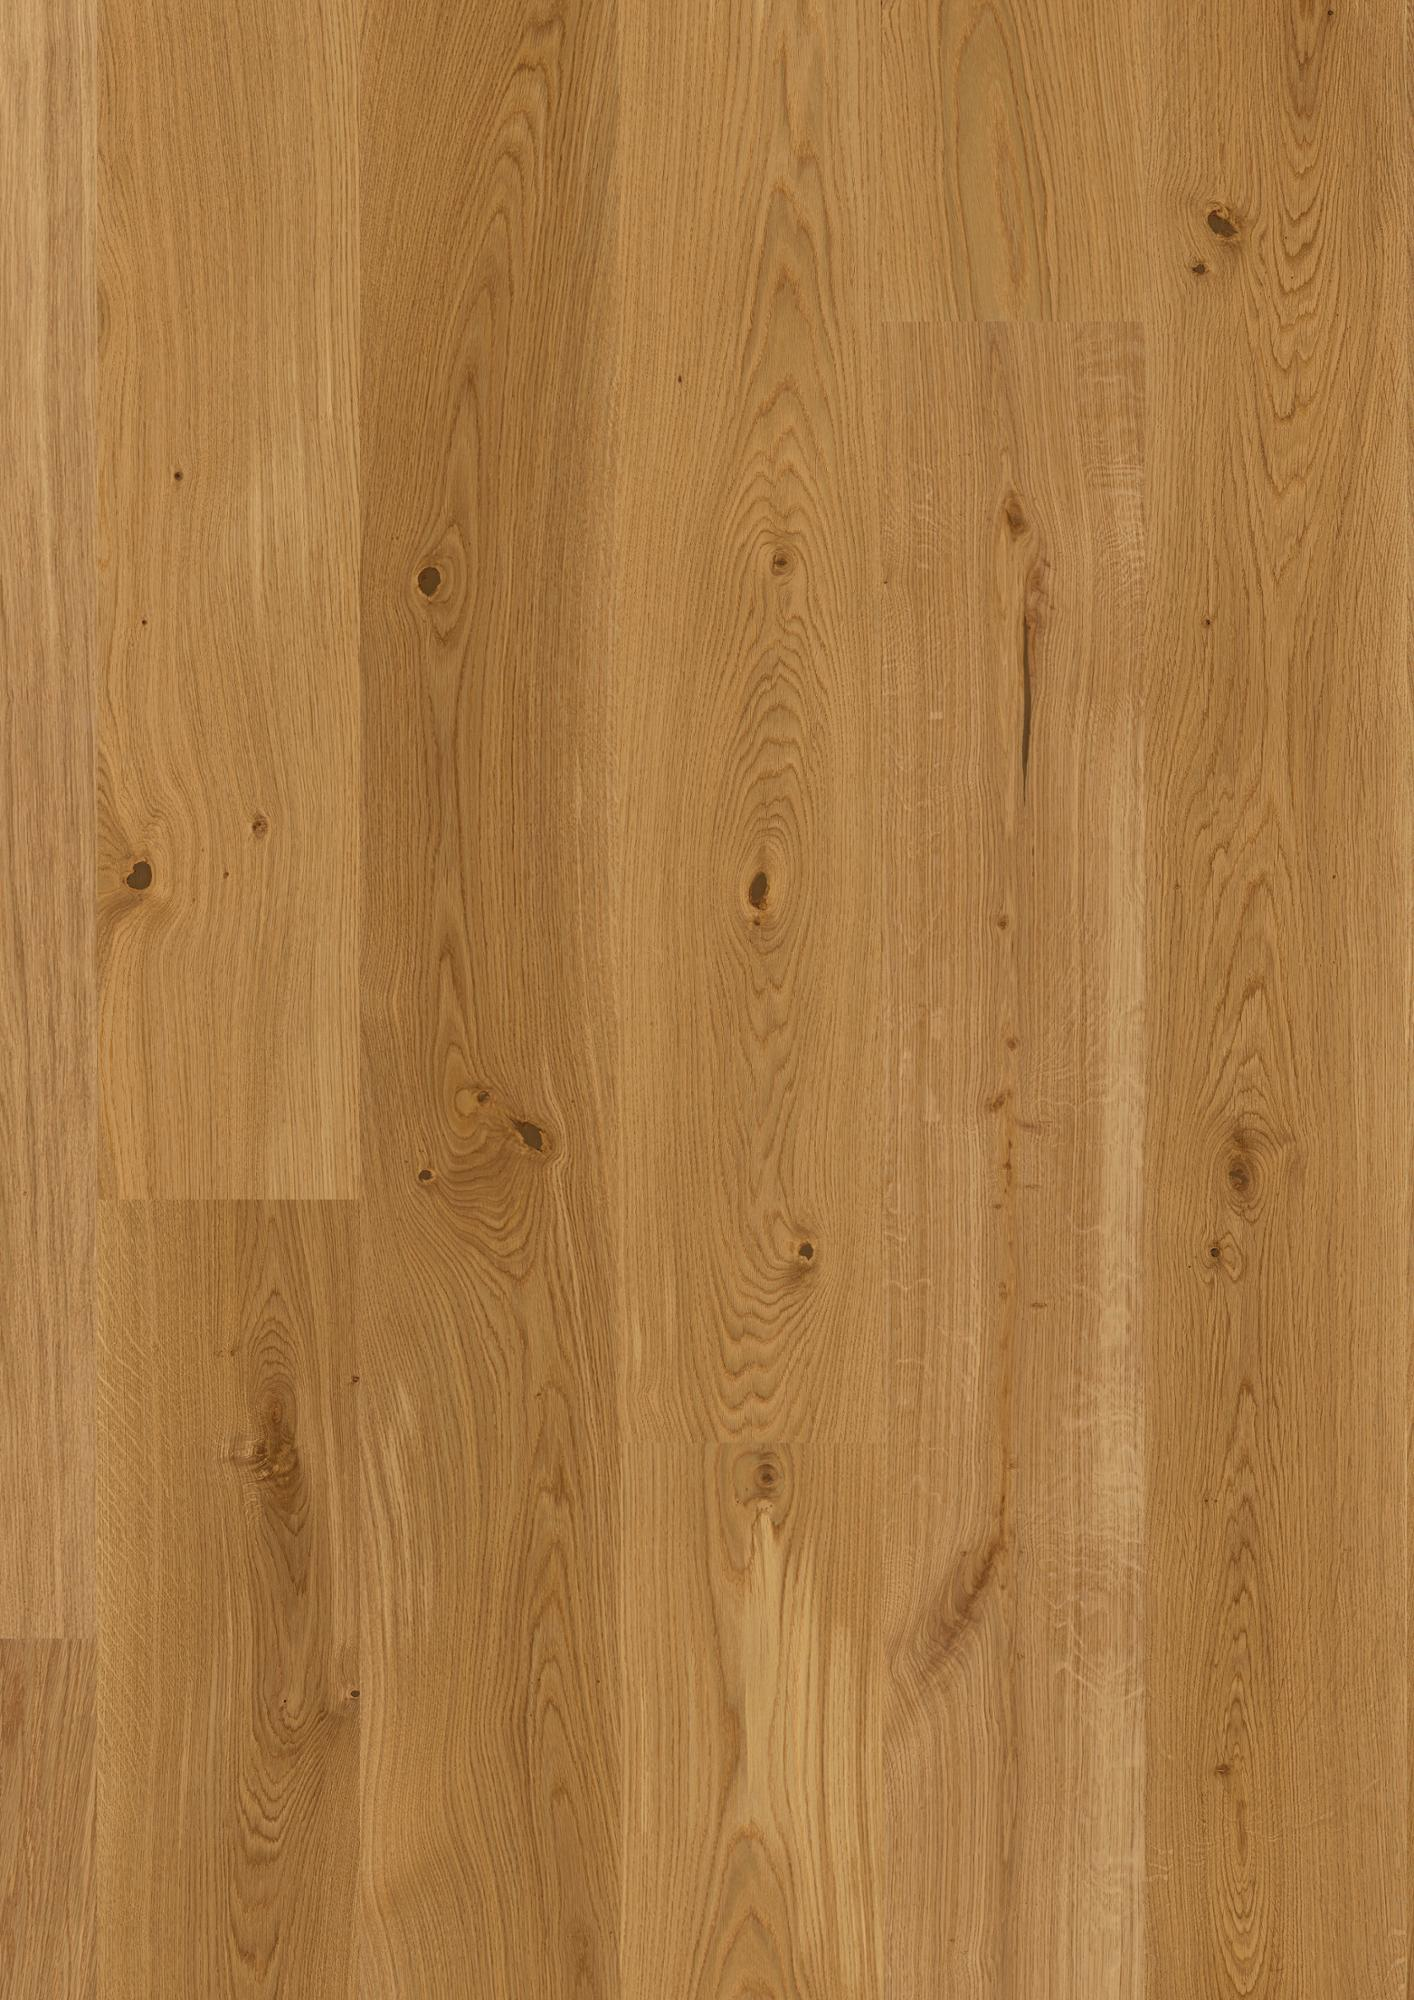 Oak Animoso, Live Natural oil, Not brushed, Beveled 2V, Plank Castle, 14x209x2200mm